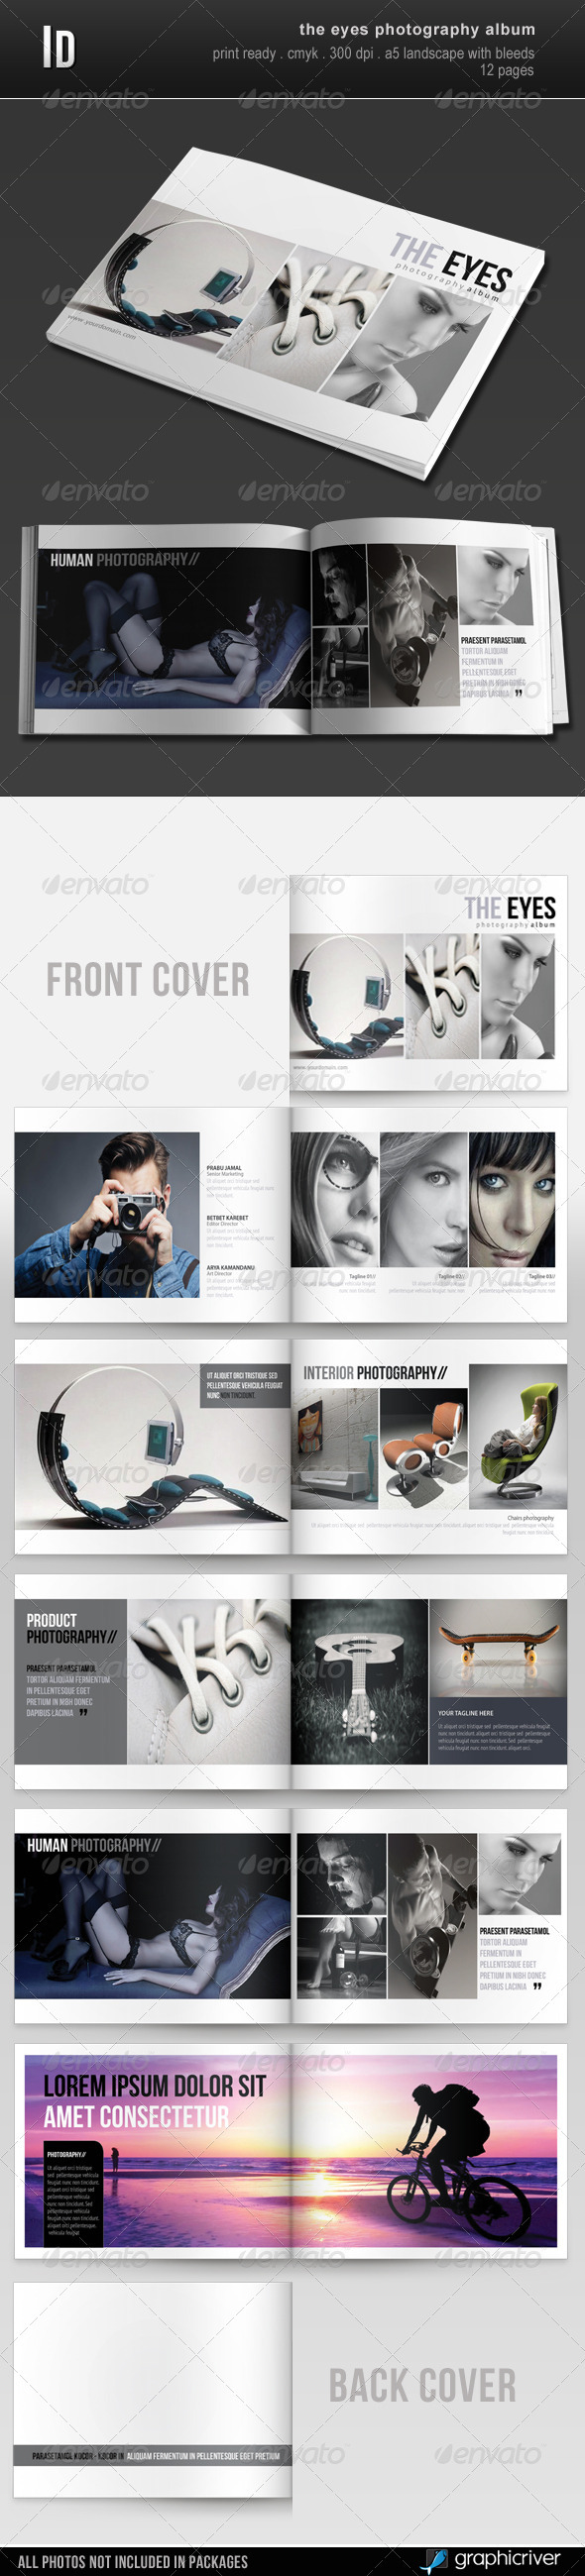 Indesign Templates Torrent  indesign templates torrent fonte